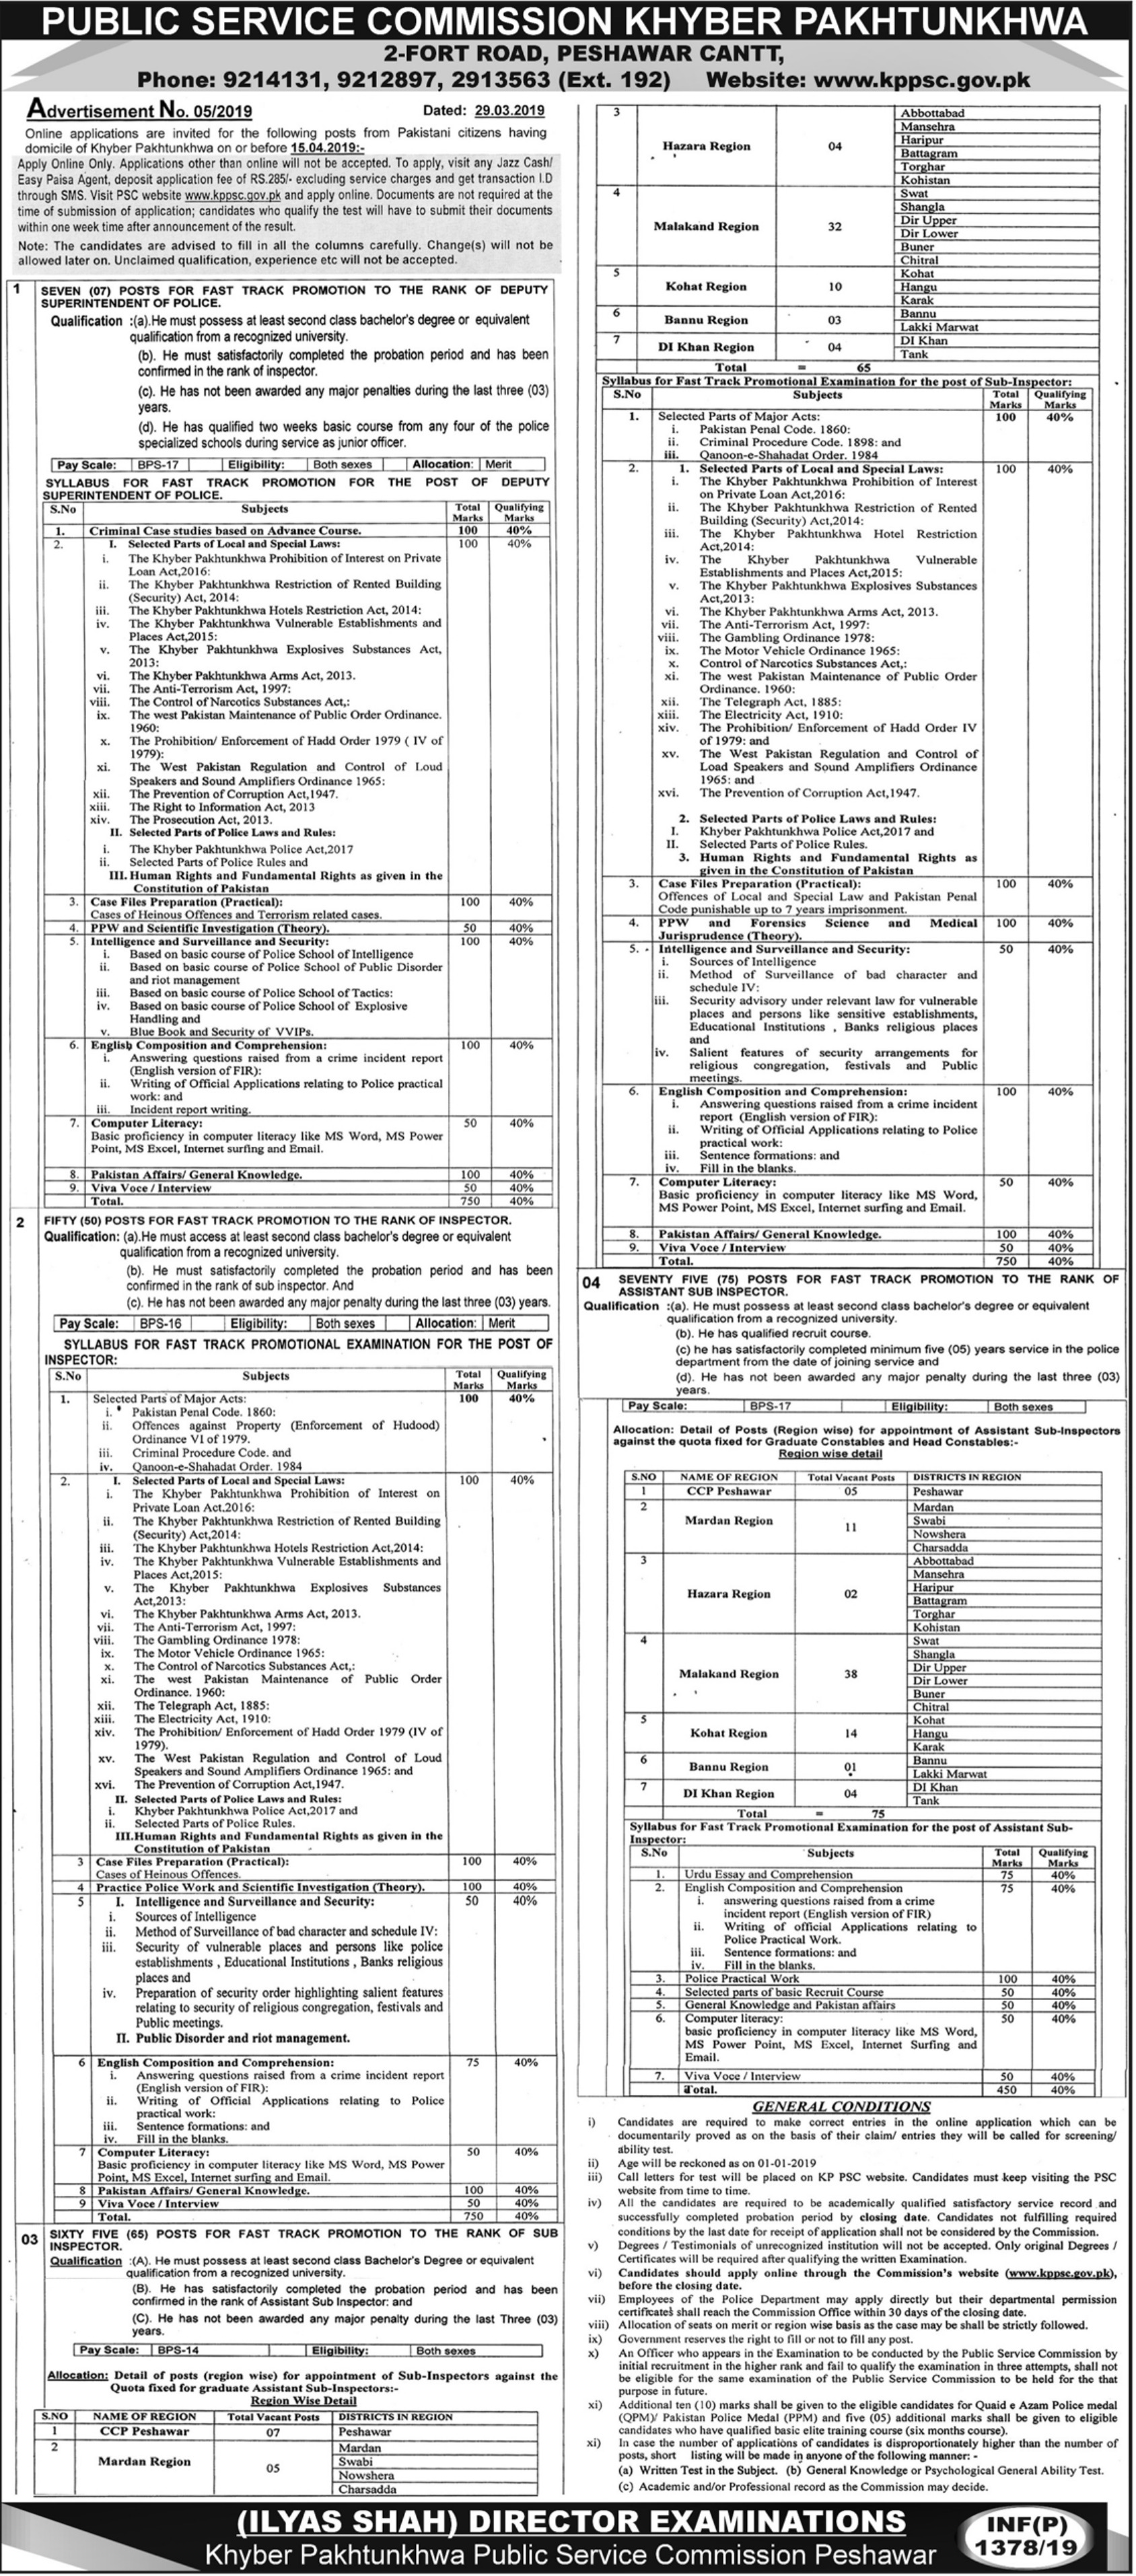 KPPSC Jobs 2019 Public Service Commission Khyber Pakhtunkhwa Latest